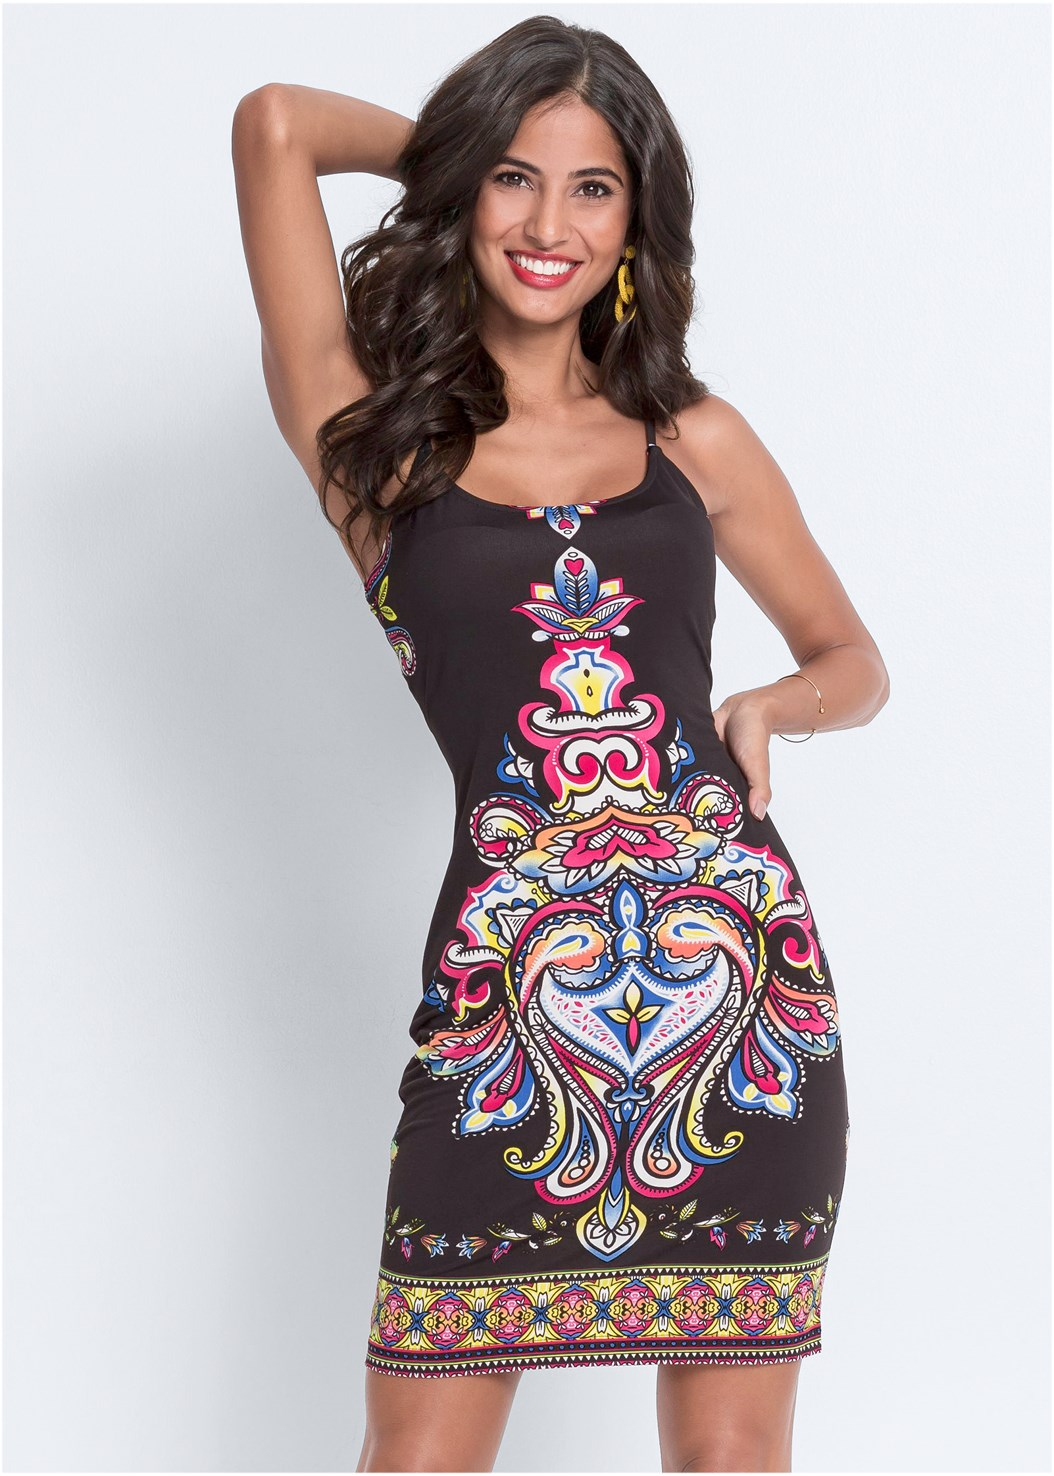 Printed Tank Dress,High Heel Strappy Sandals